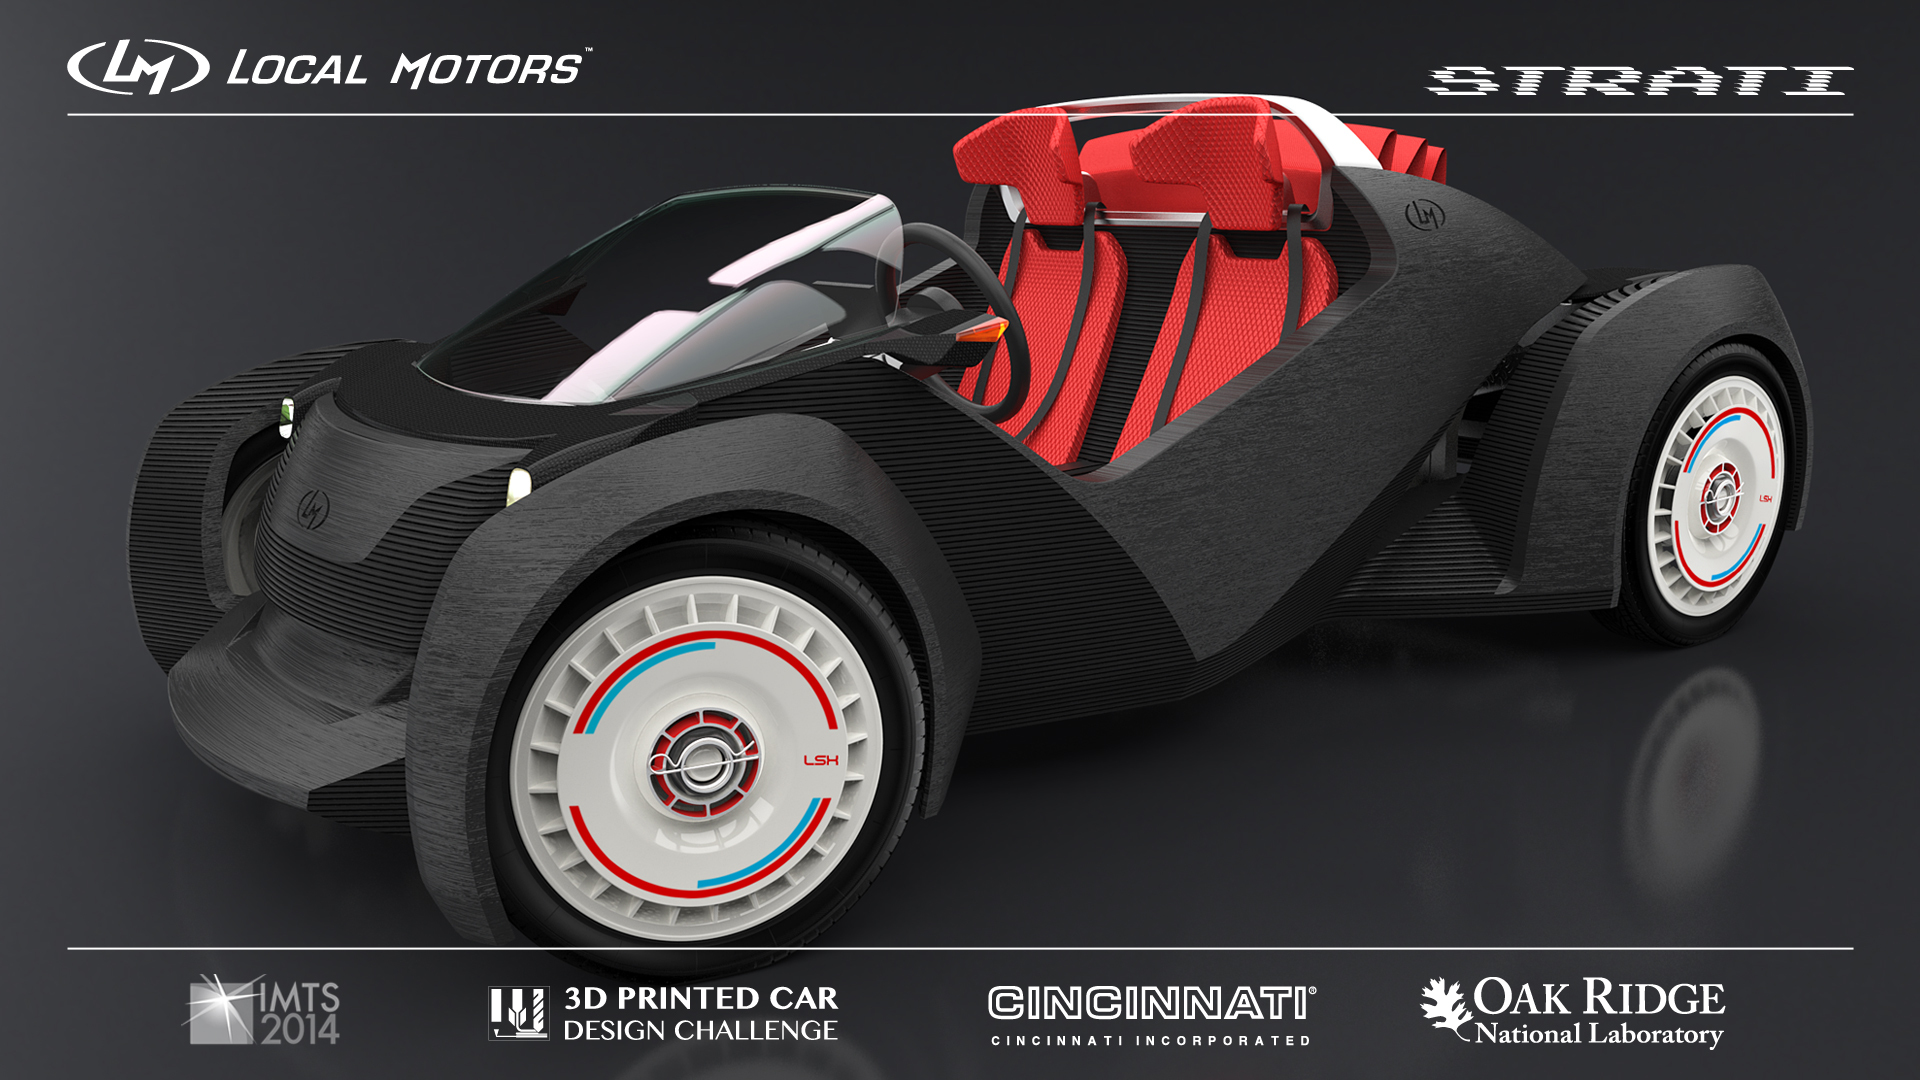 Winning design concept - Strati - from the Local Motors 3D Printed Car Design Challenge. Created by Michele Anoe from Turin, Italy. (Photo: Business Wire)